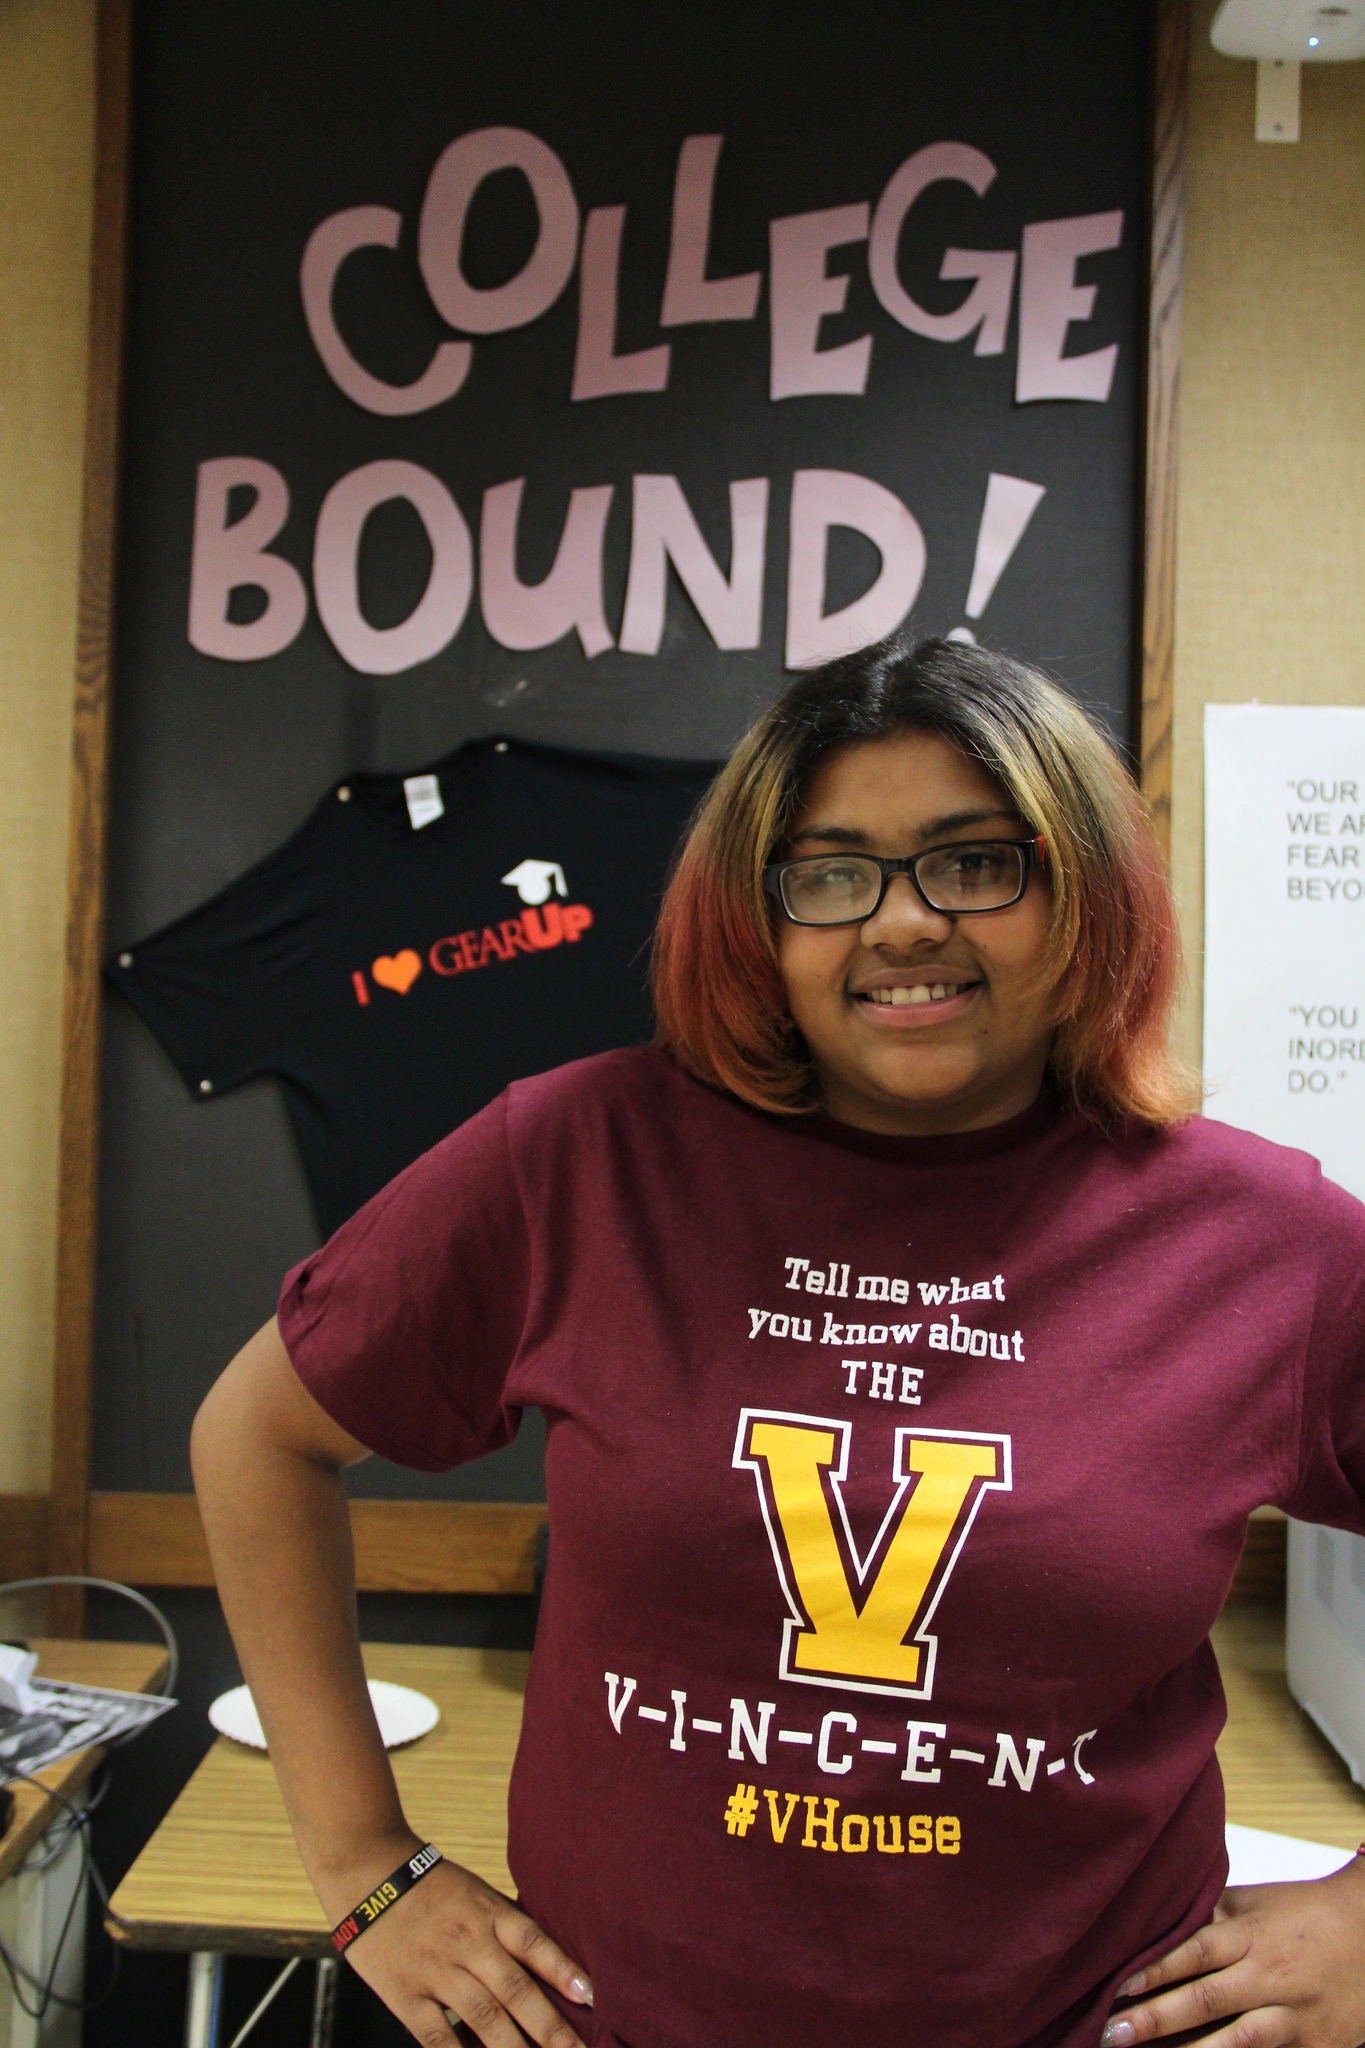 horatio alger scholarship boosts vincent high senior and her cymone newton a senior at vincent high school has won 8 000 in college scholarships